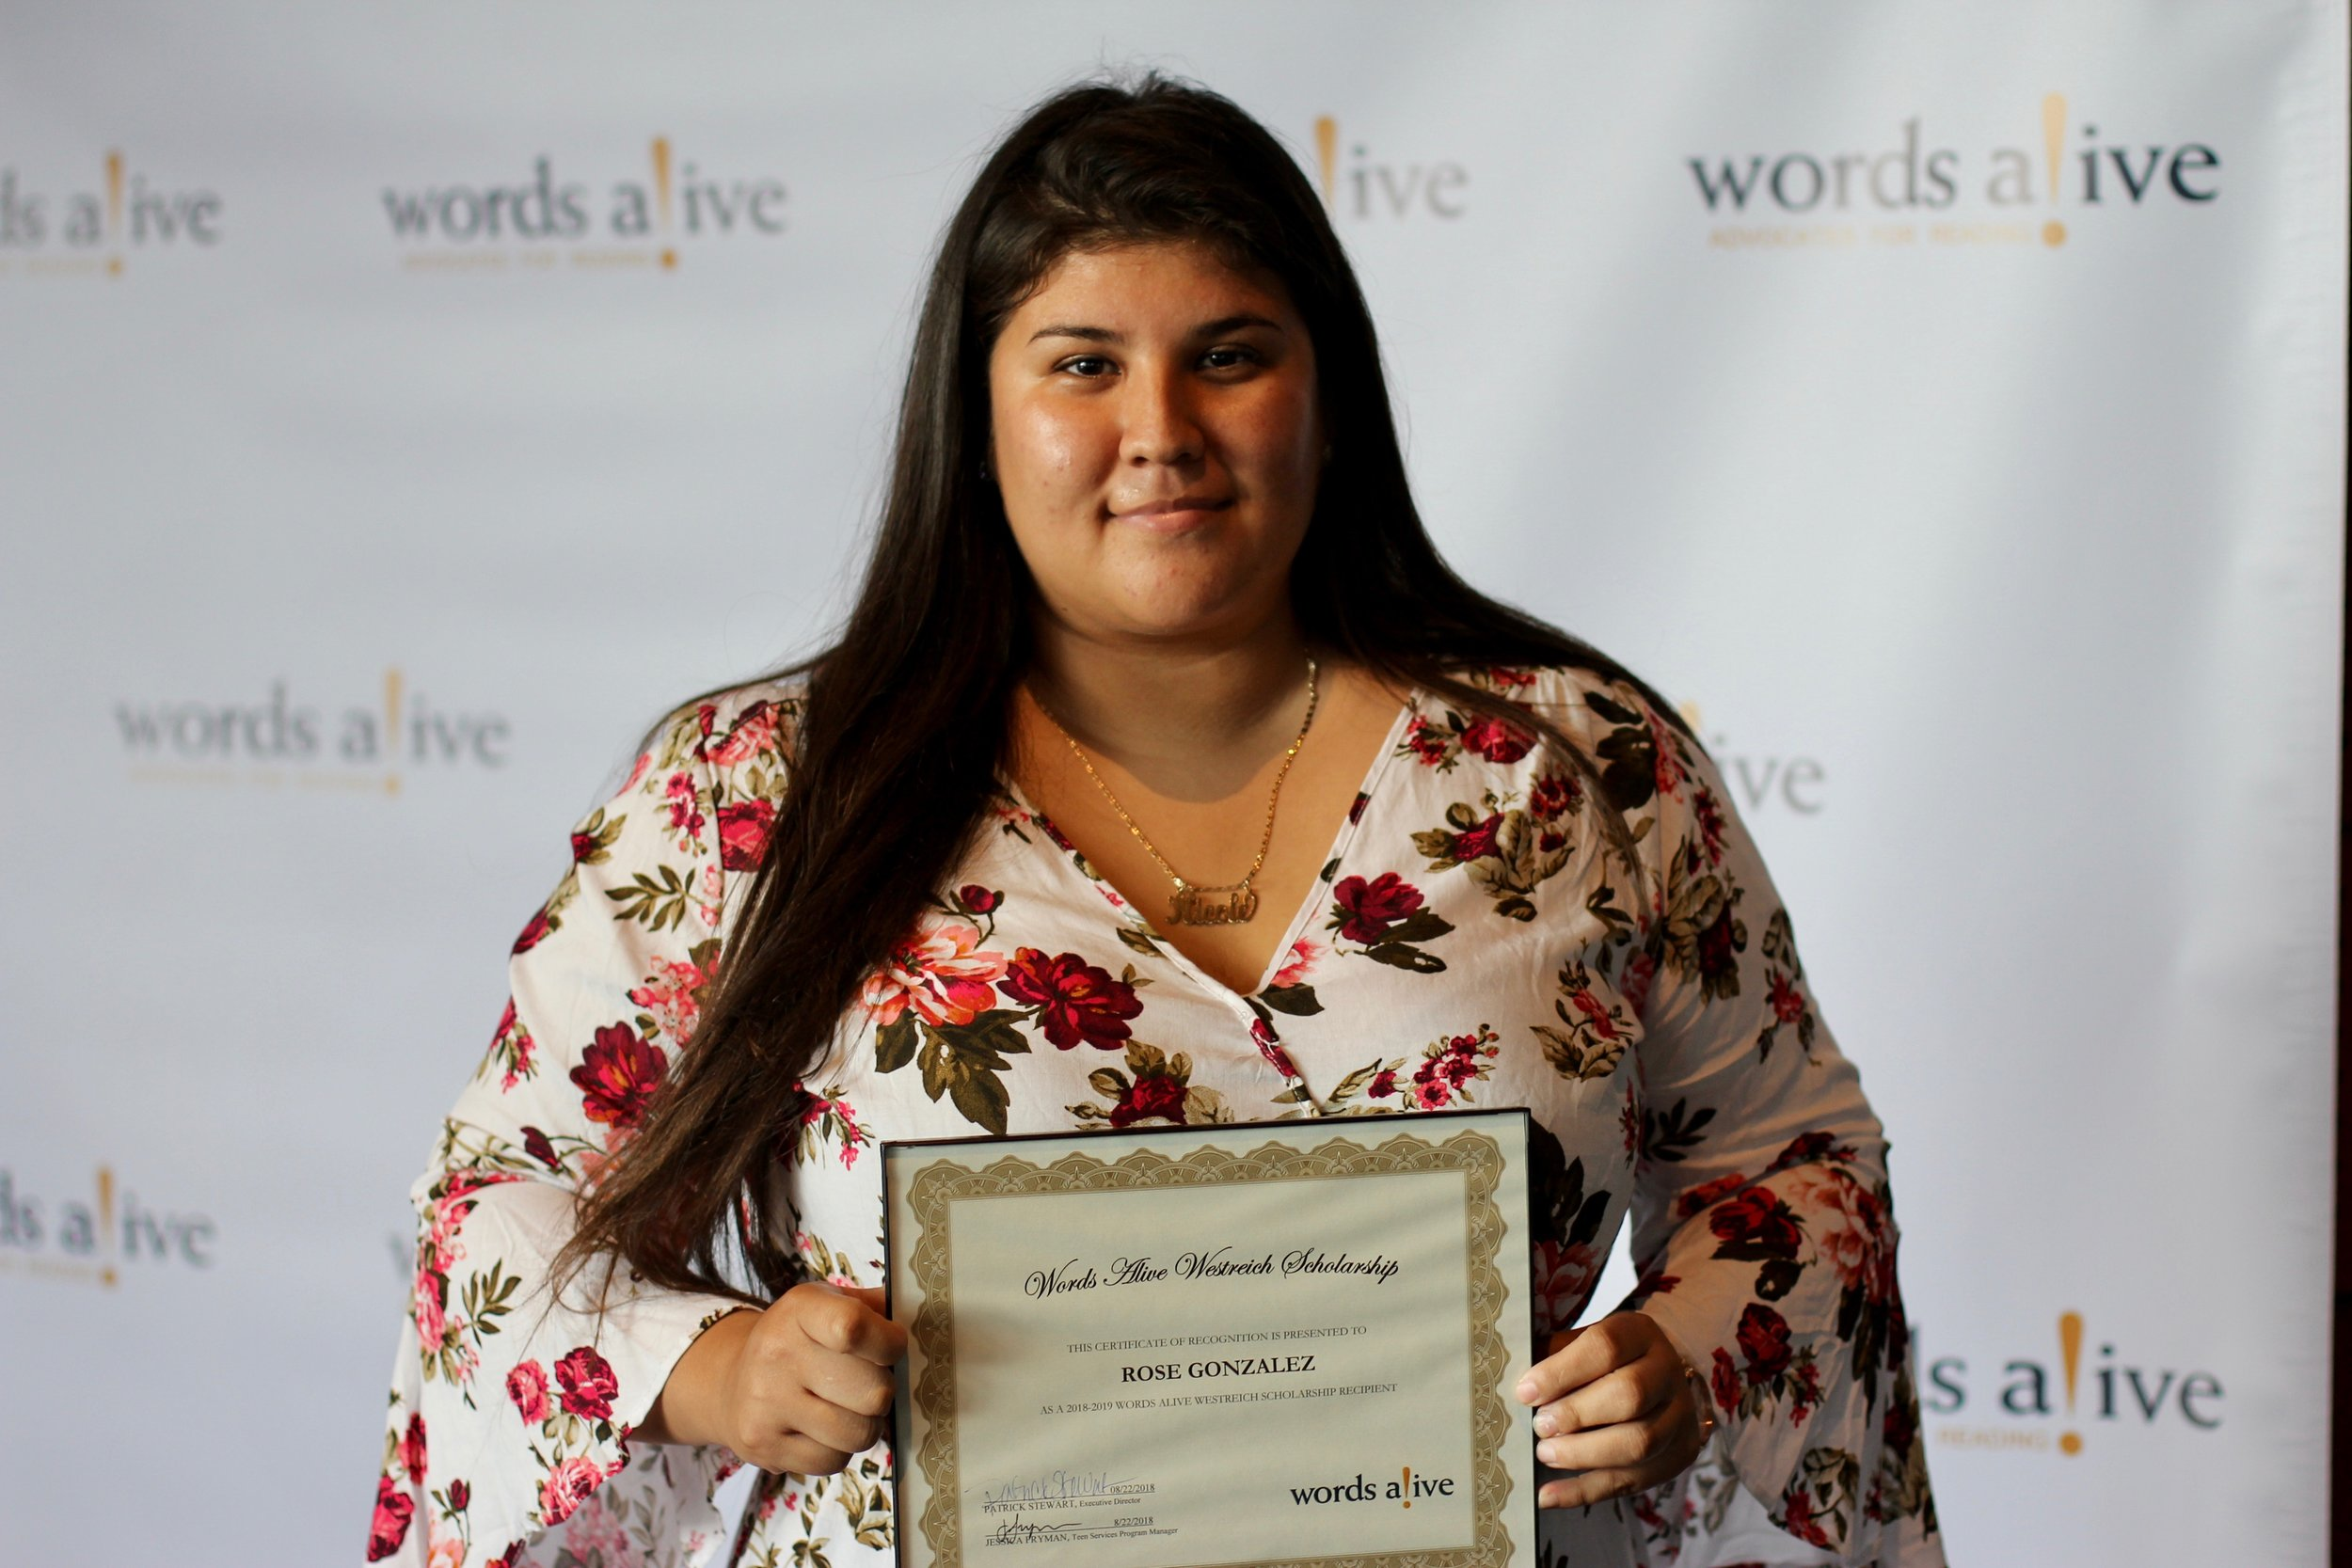 An image of Rose Gonzalez holding her award in front of a Words Alive backdrop.